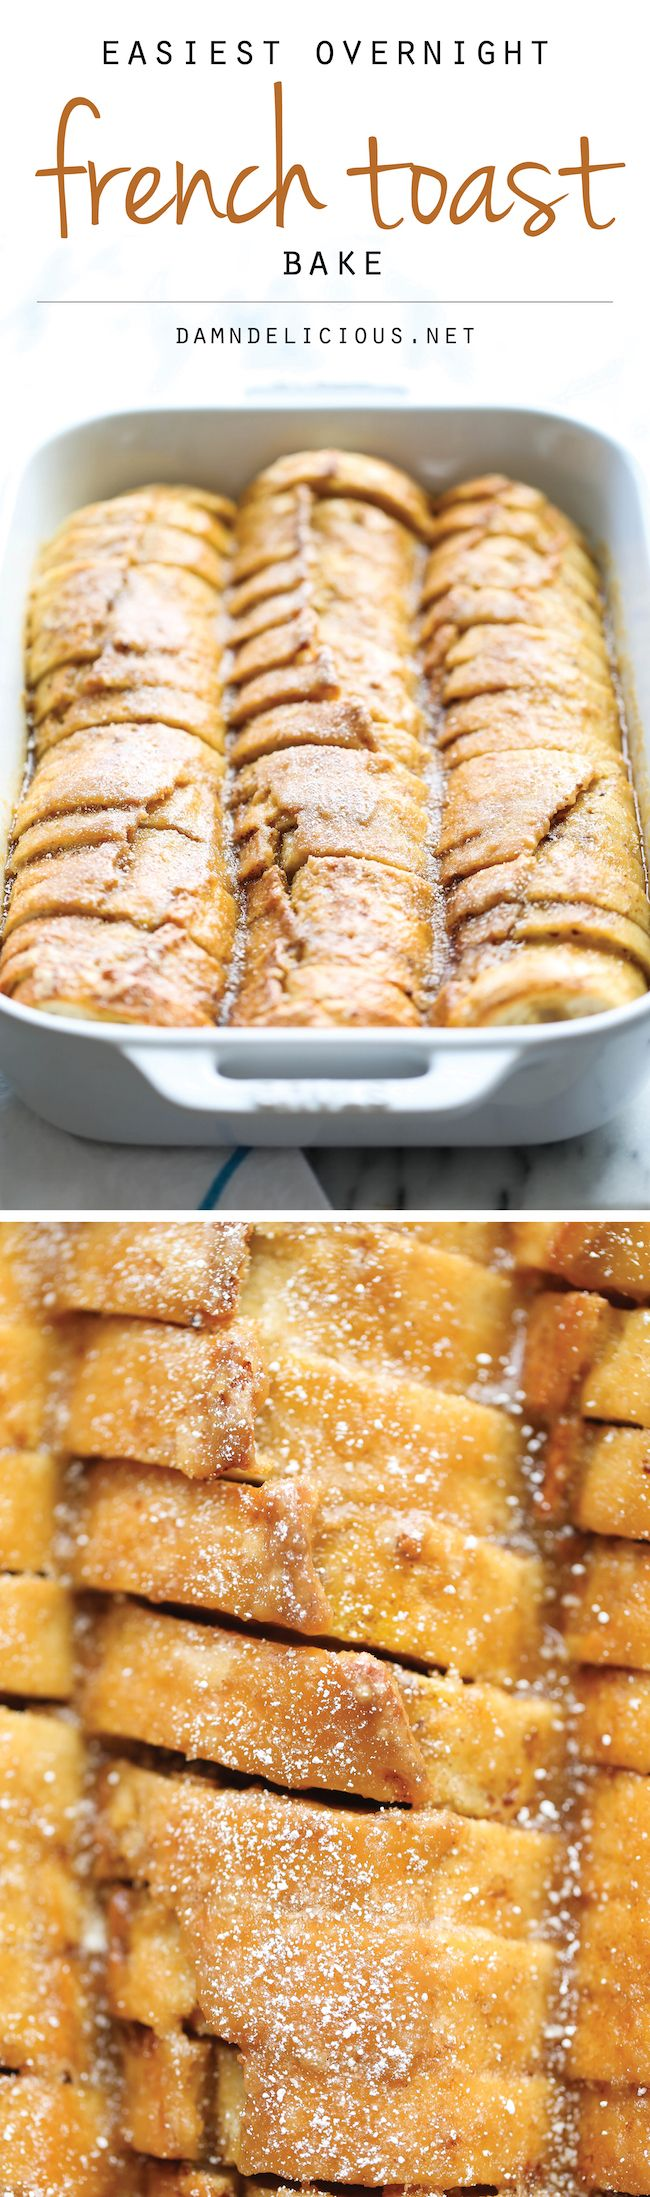 Overnight French Toast on Pinterest | Baked French Toast ...